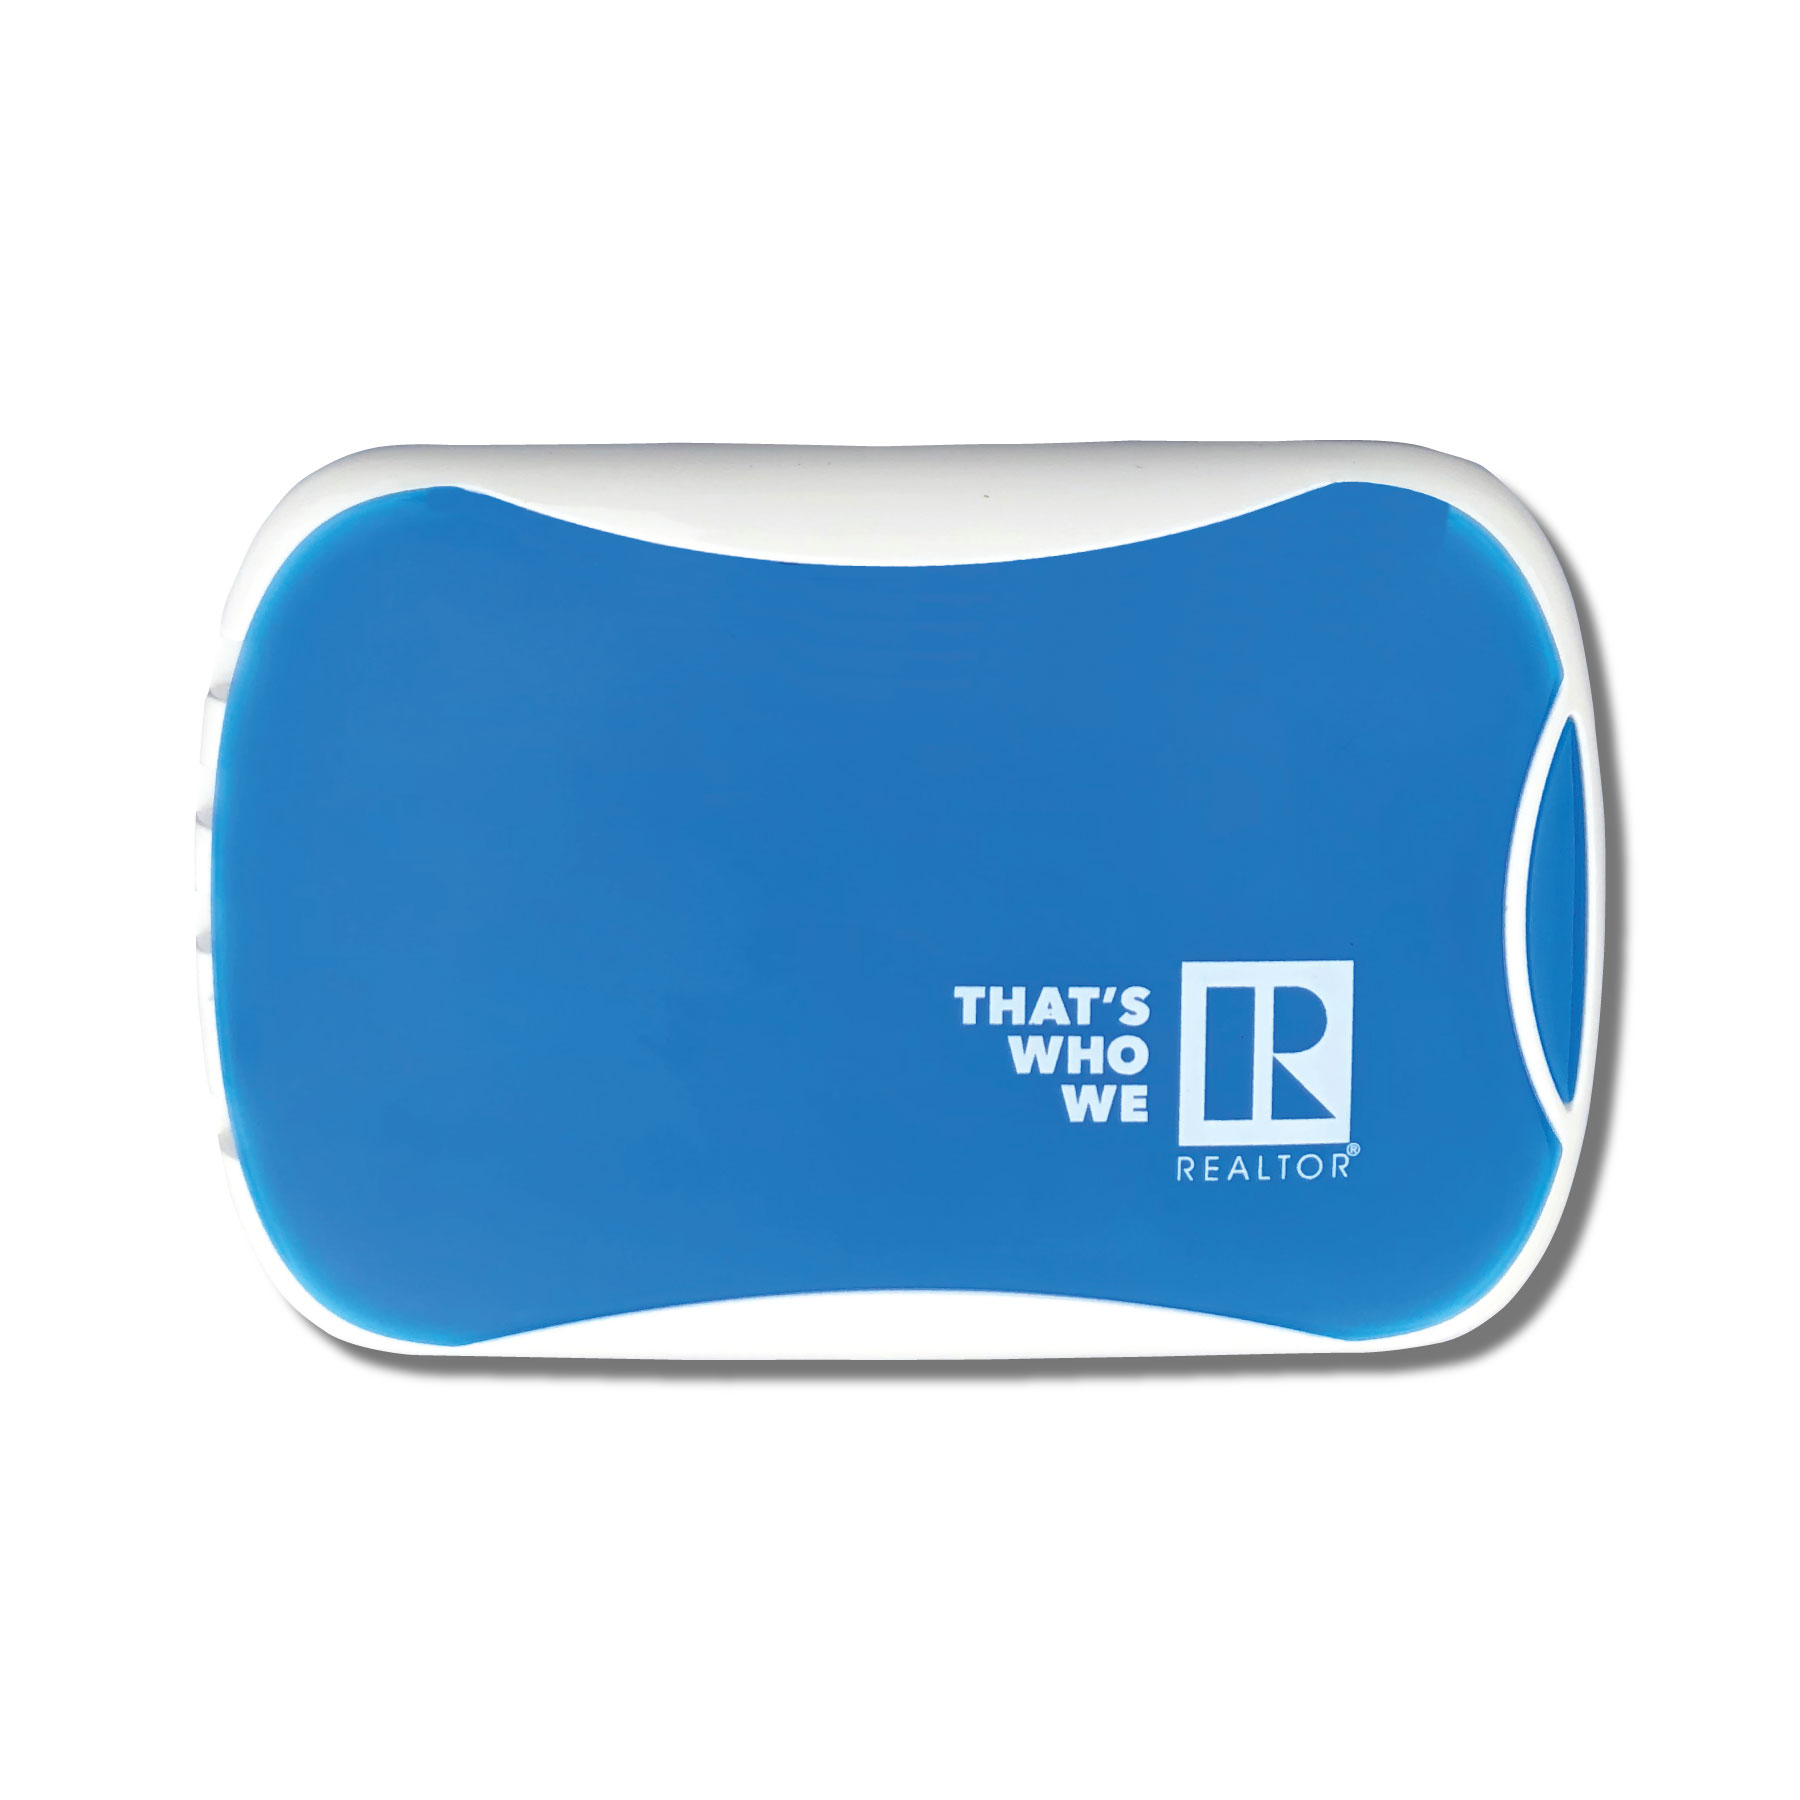 """That's Who We R"" USB Power Bank with Built in Cords (4-in-1) - RTS4749"